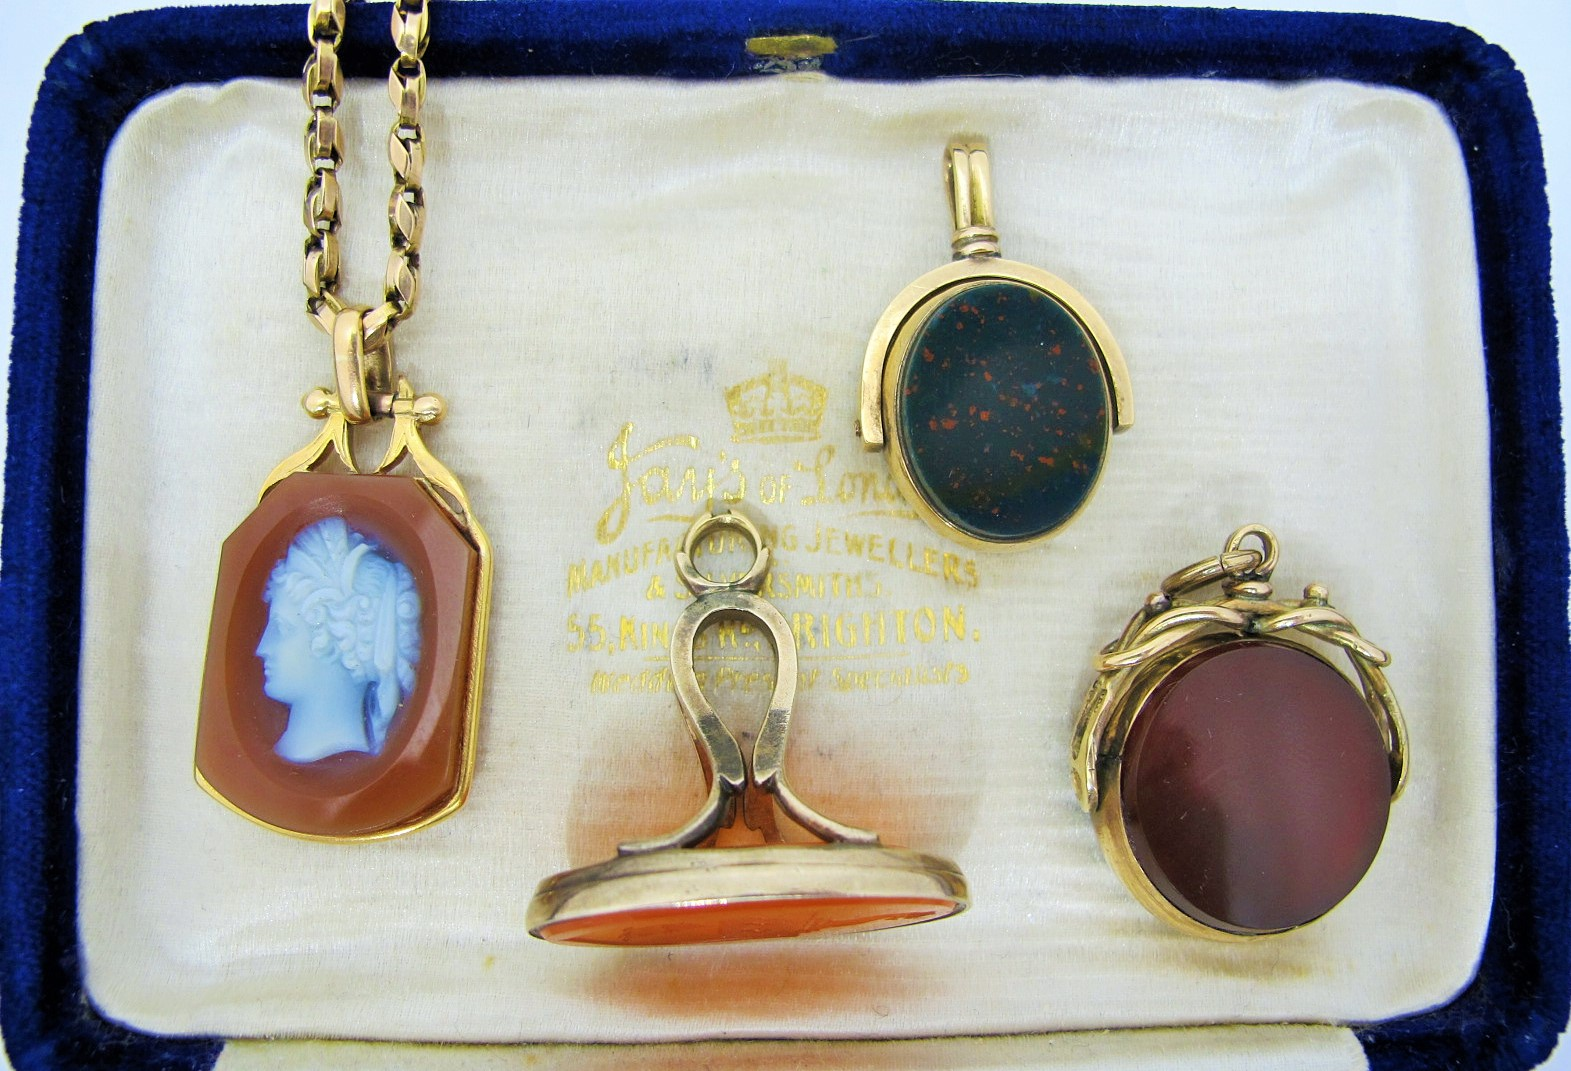 Four nineteenth-century watch fobs, from left to right: Reversible sardonyx cameo in 14k gold, carnelian seal intaglio in 10k gold, carnelian and bloodstone swivel-fob in 10k gold, carnelian and bloodstone swivel-fob in 9k gold. All available for sale at Gray & Davis.